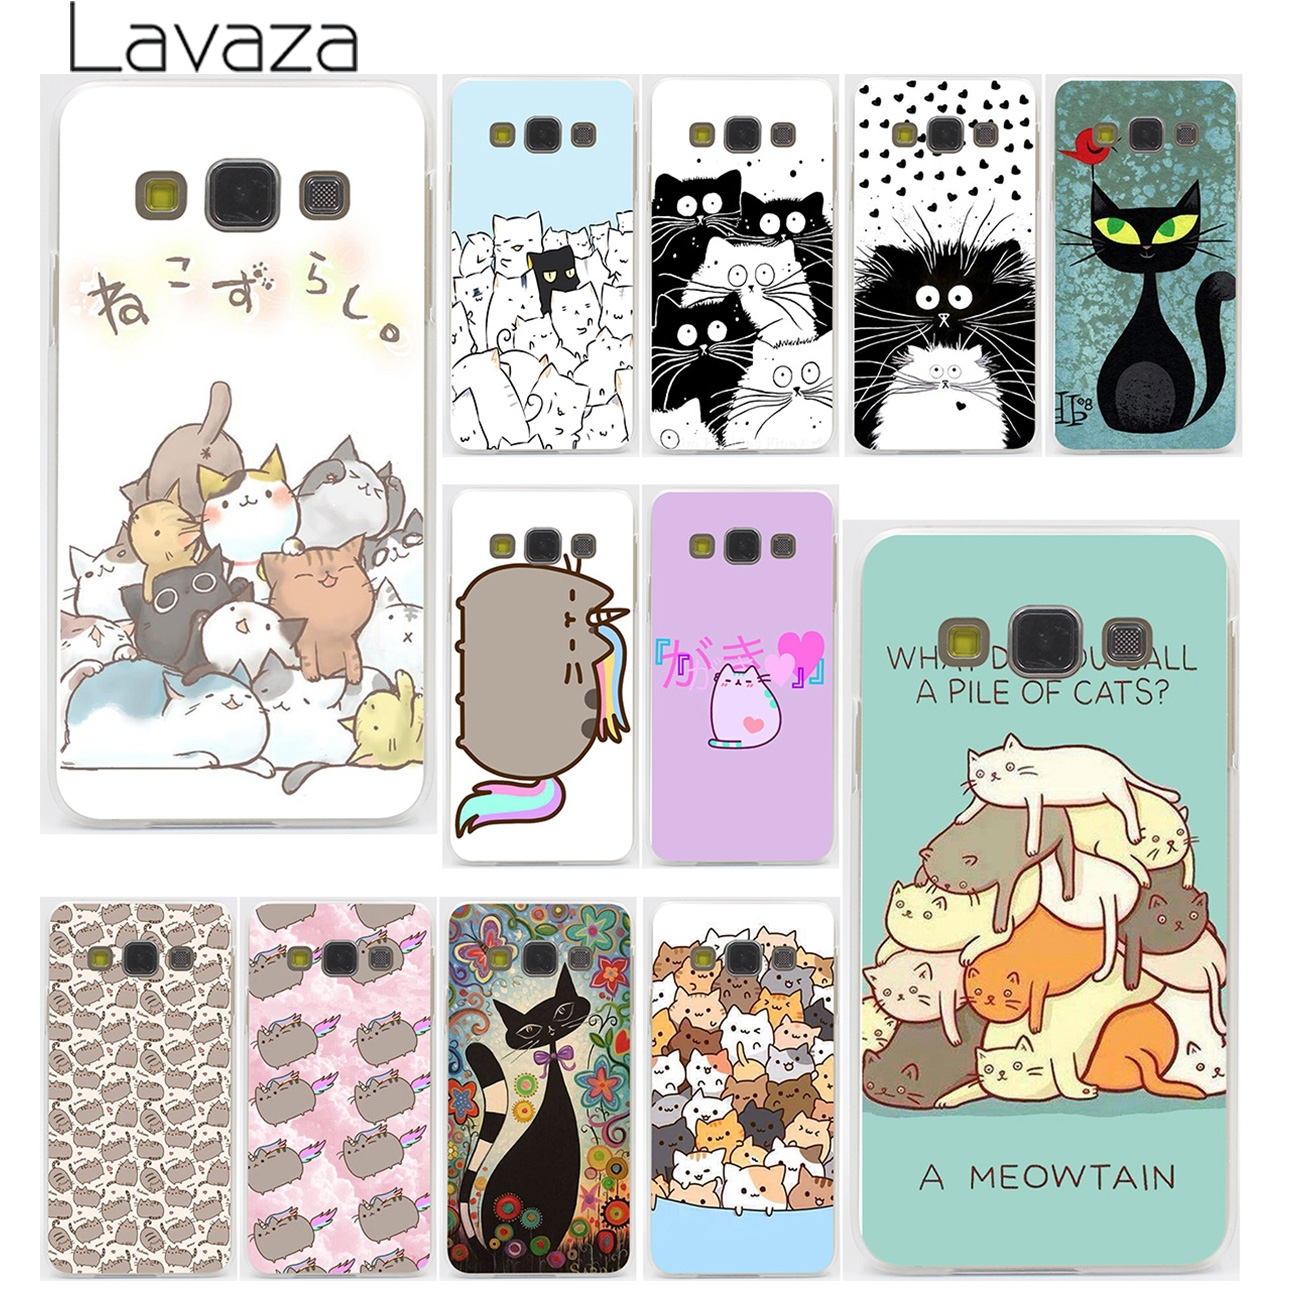 Phone Bags & Cases Half-wrapped Case Maiyaca Moon Bunny Rabbit Style Painted Beautiful Phone Accessories Case For Samsung Galaxy S7 S6 Edge Plus S5 S9 S8 Plus Case